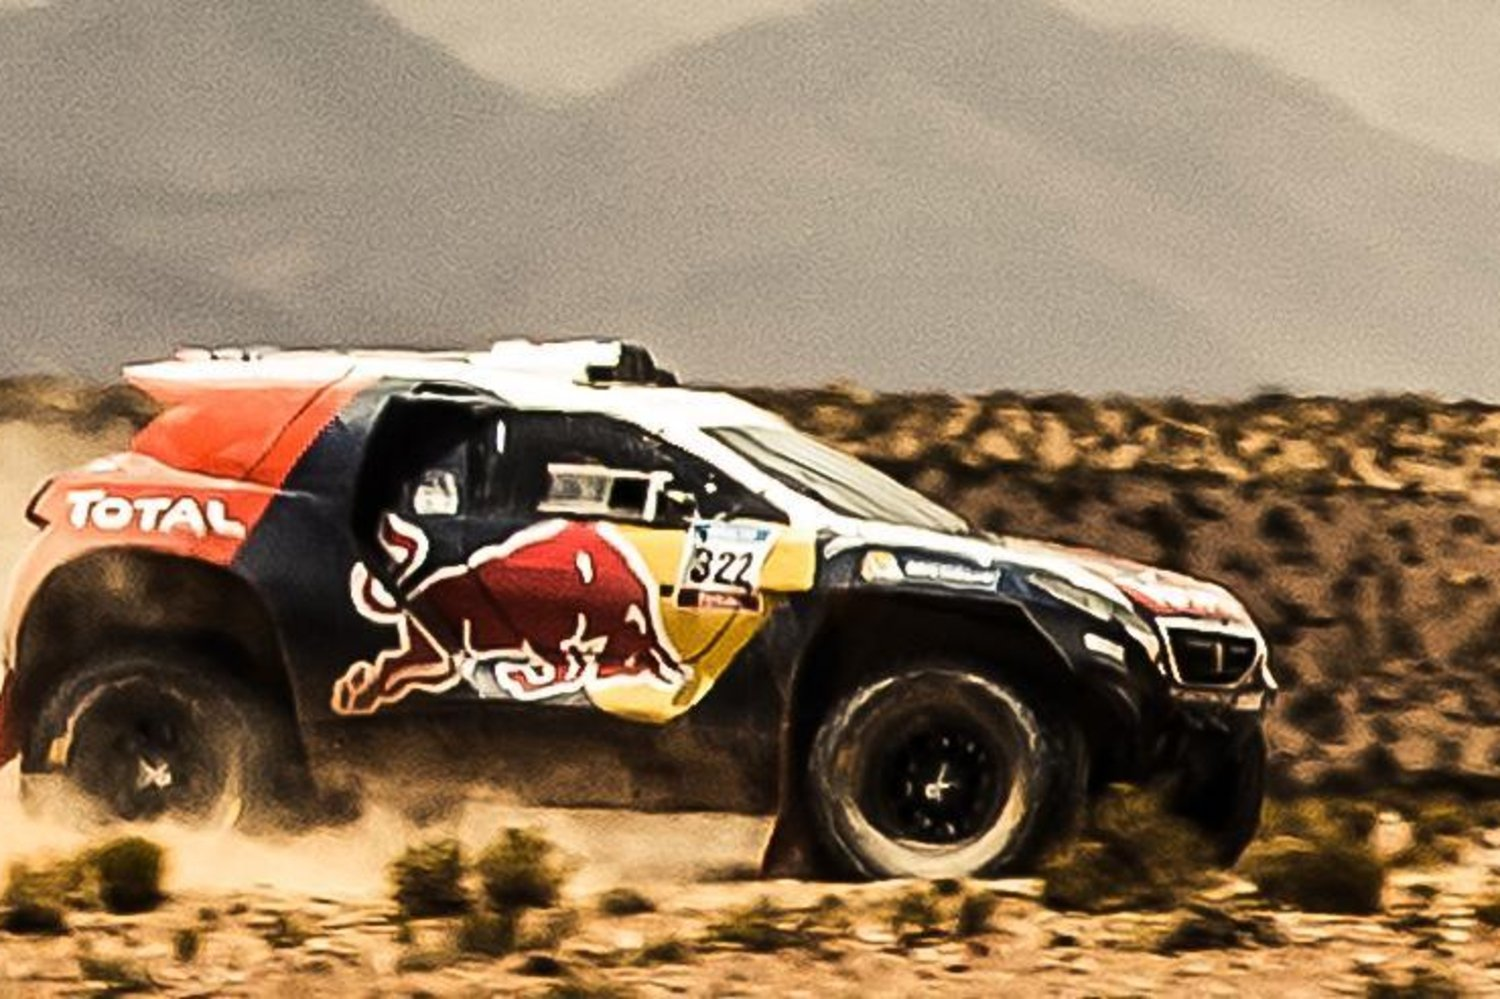 Dakar Rally 2016: News, photos & video ++Event Page++.